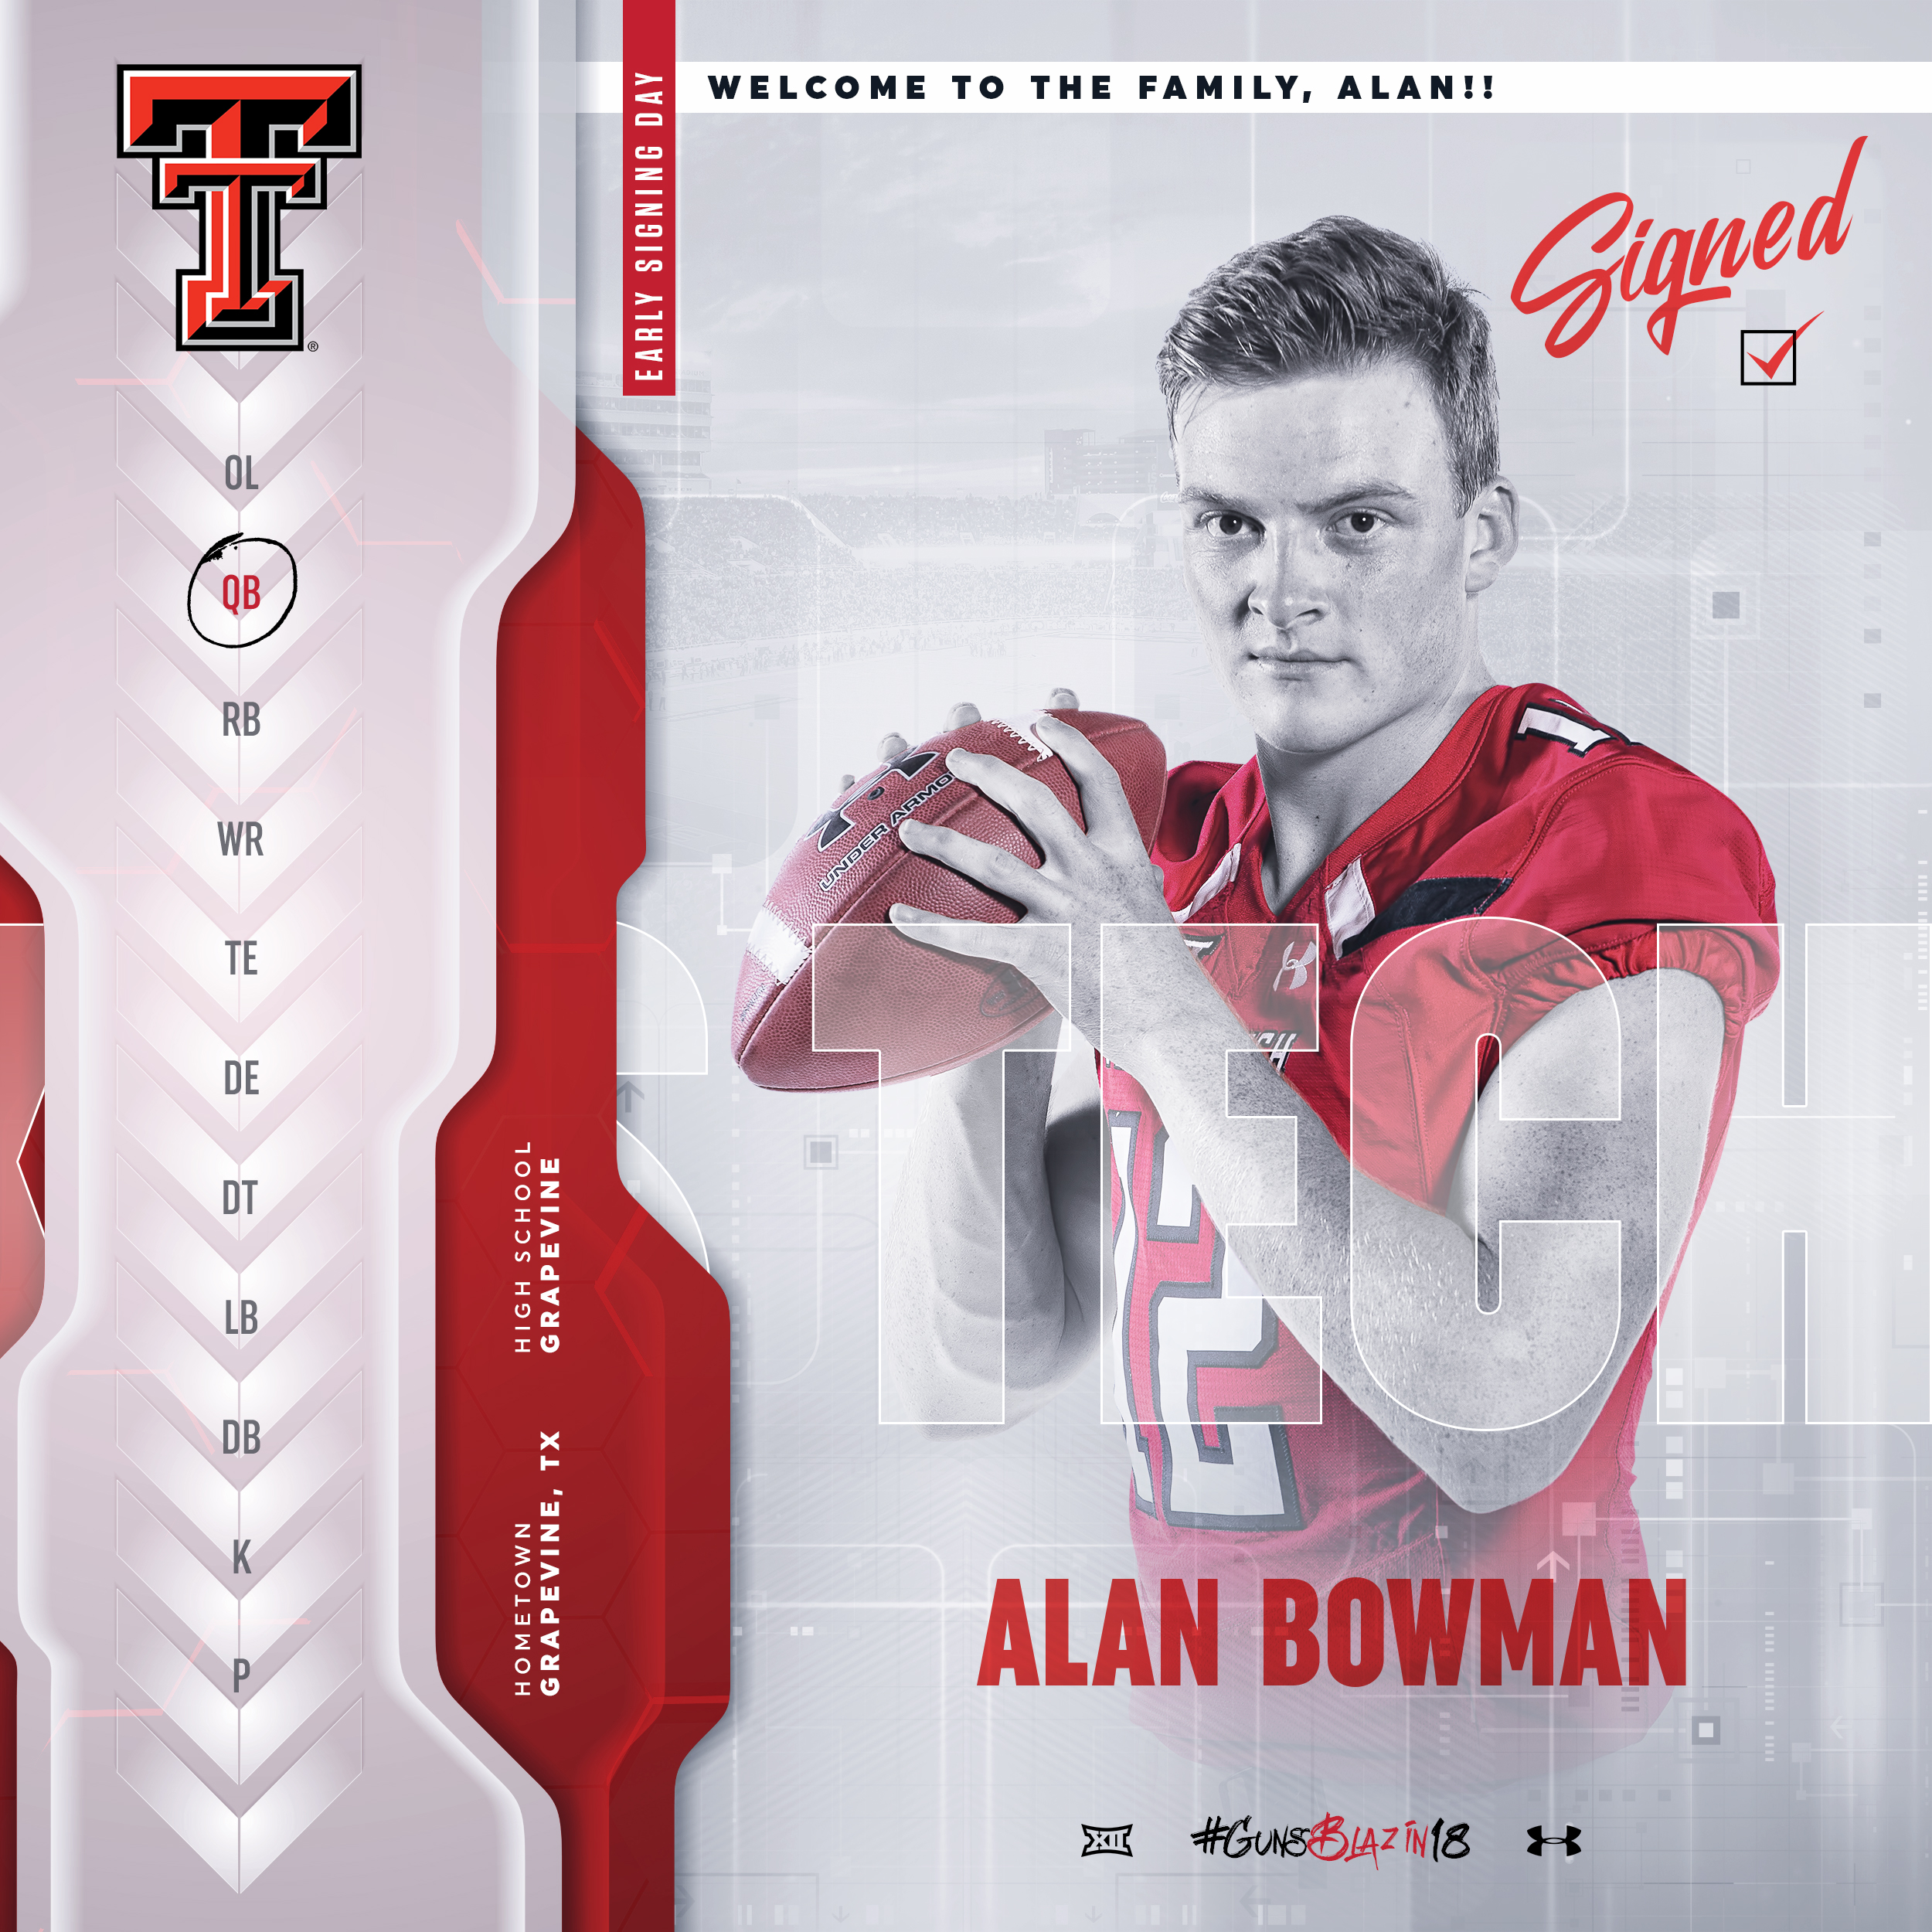 TTU Alan Bowman 2017 Early Signing Day